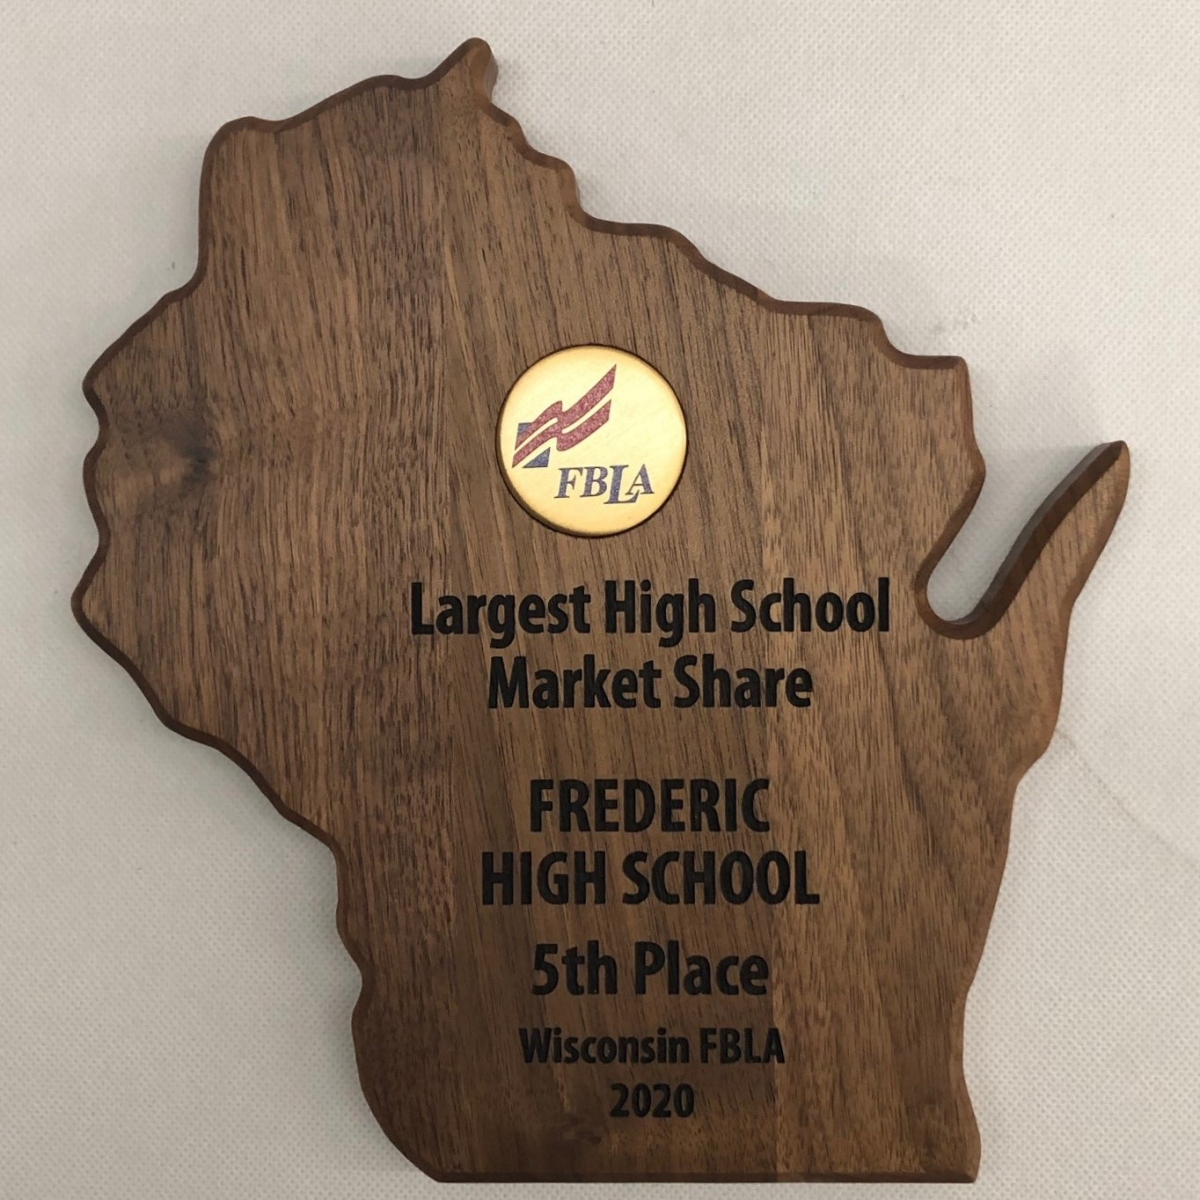 HS MarketShare - Frederic 5th Place